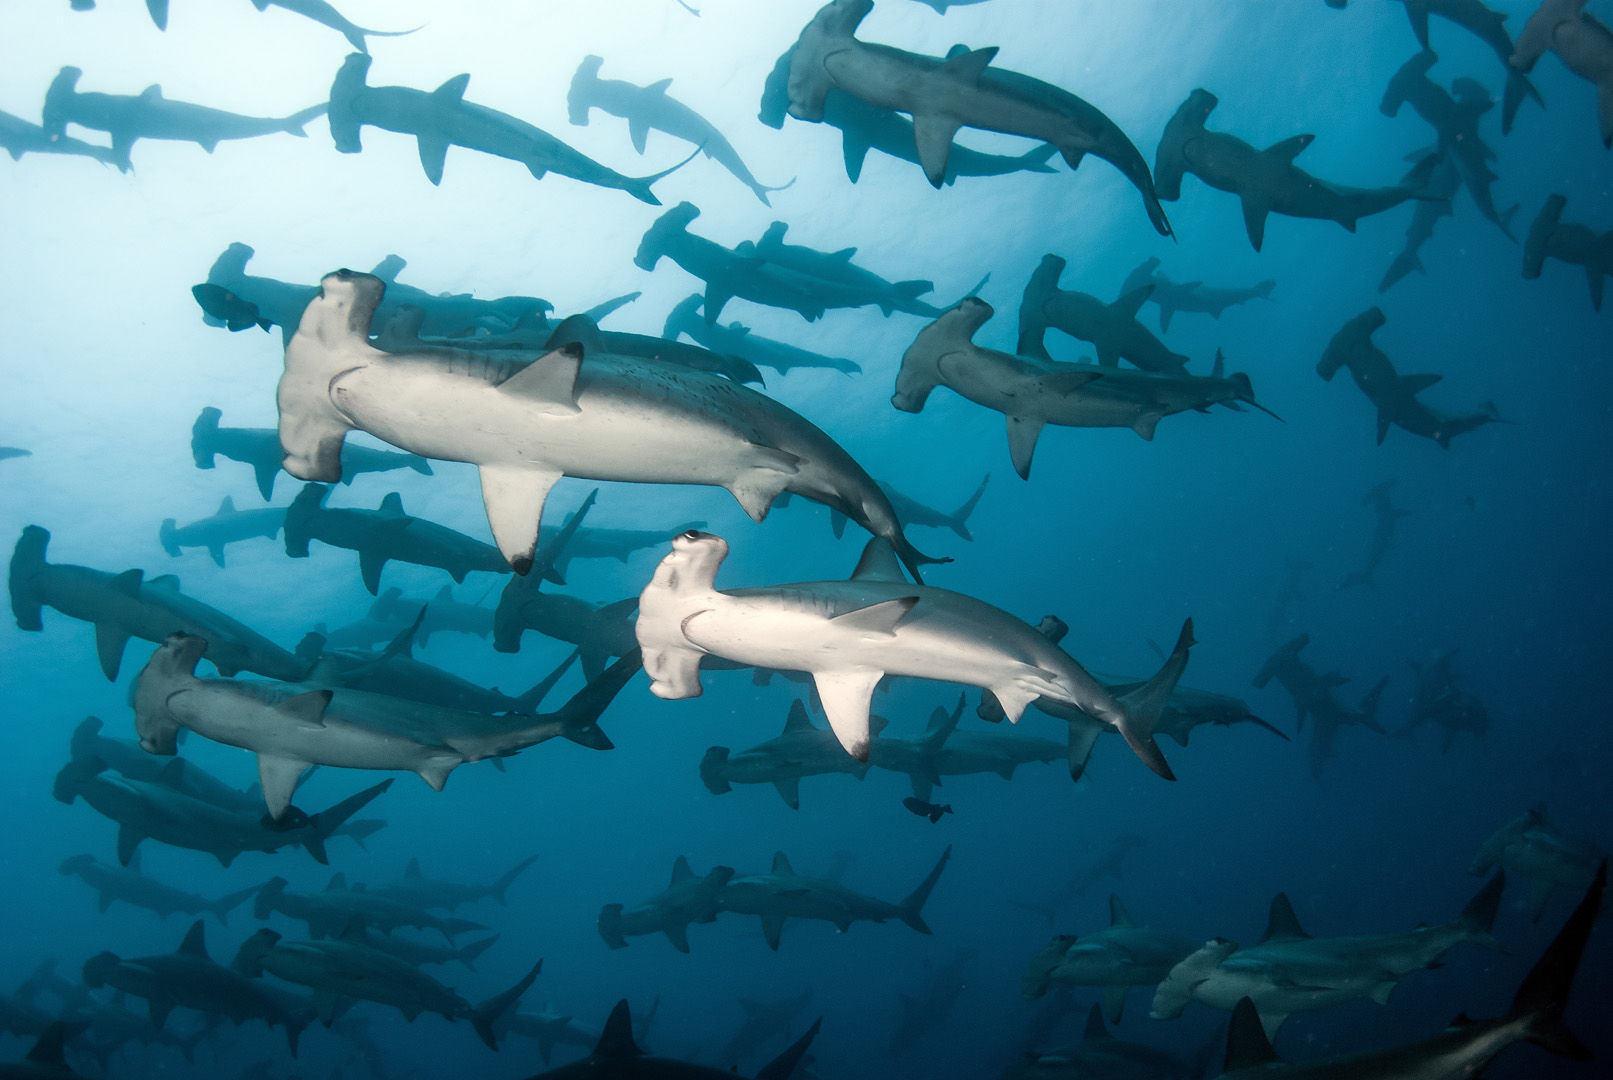 The nutrient-waters surrounding the Galapagos Islands attract everything from giant whale sharks to large schools of hammerhead sharks